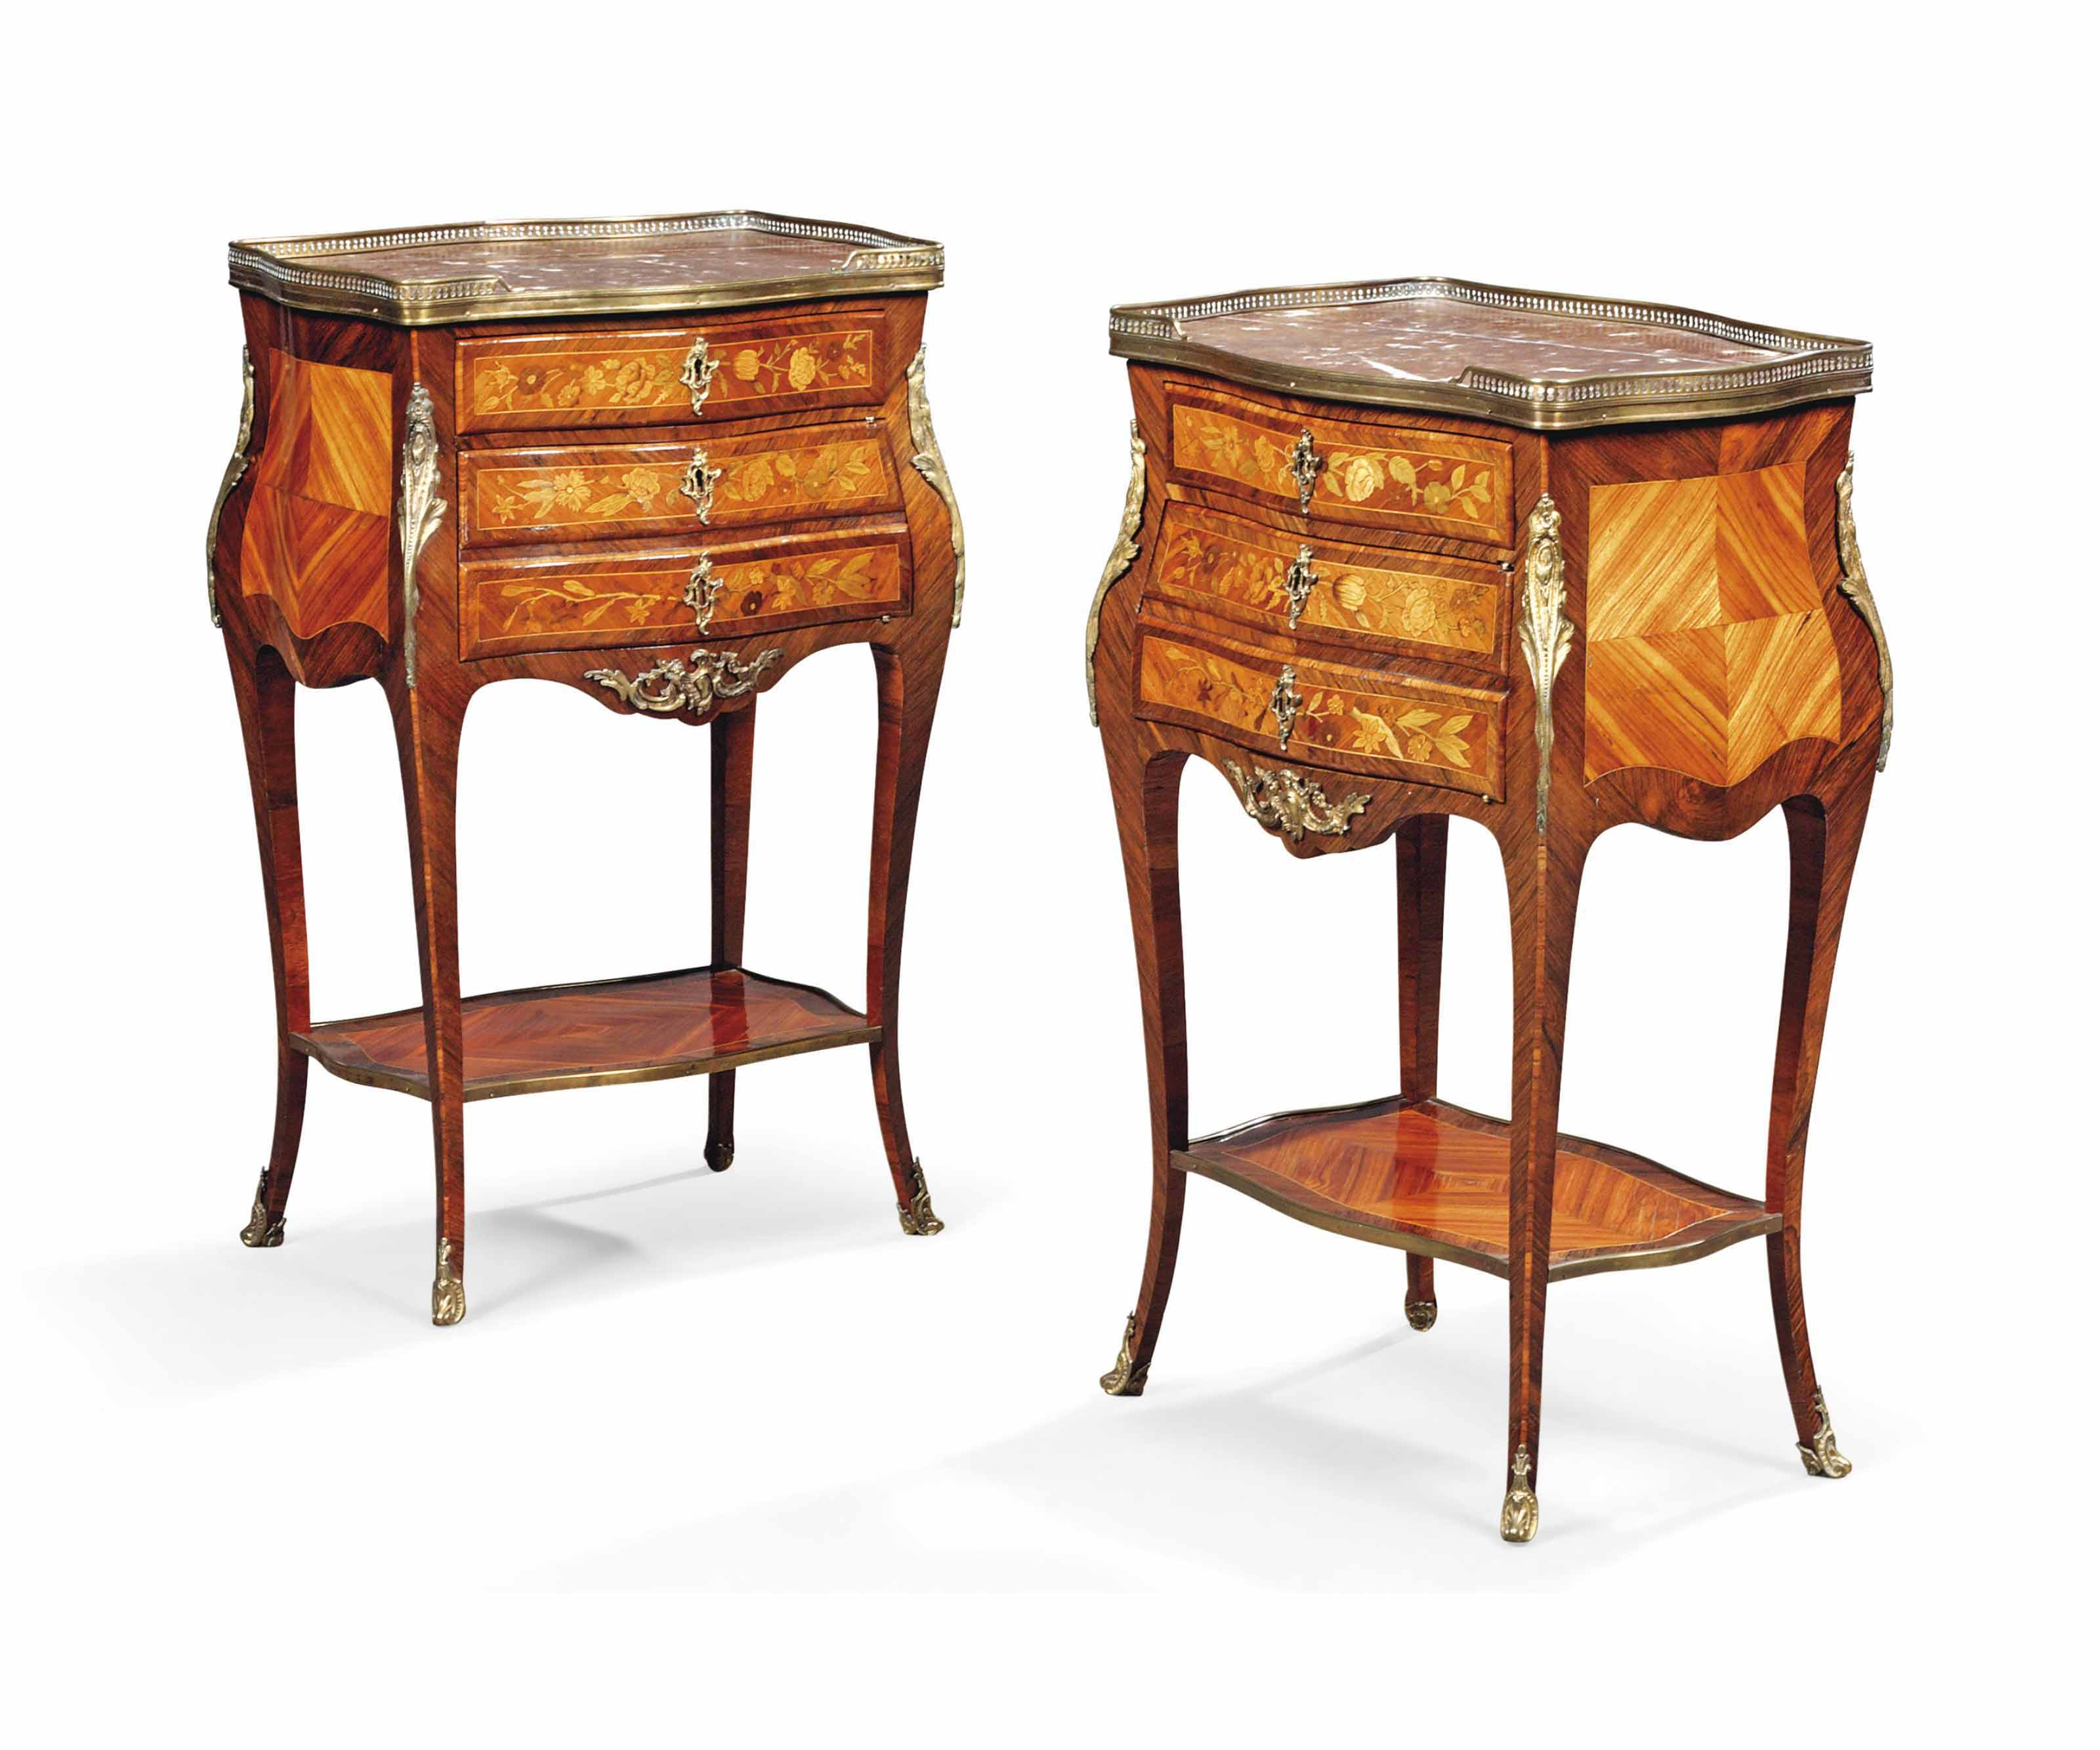 Table De Nuit New York A Pair Of French Ormolu Mounted Kingwood Tulipwood And